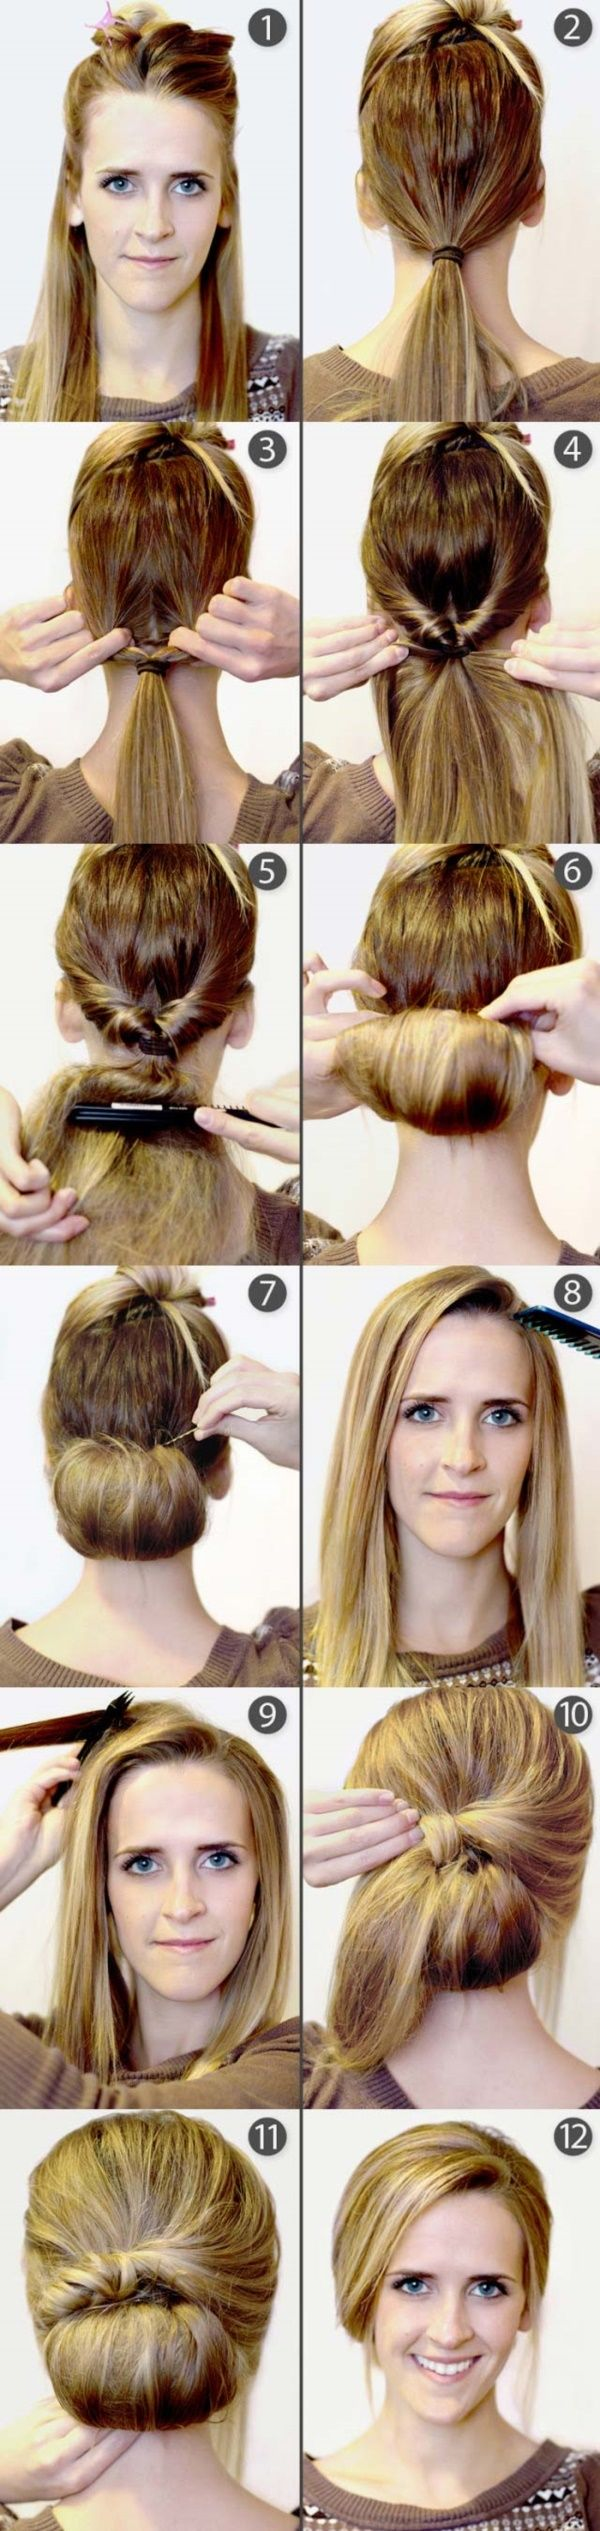 Easy DIY Hairstyles for Medium and Long Hair1 (81)